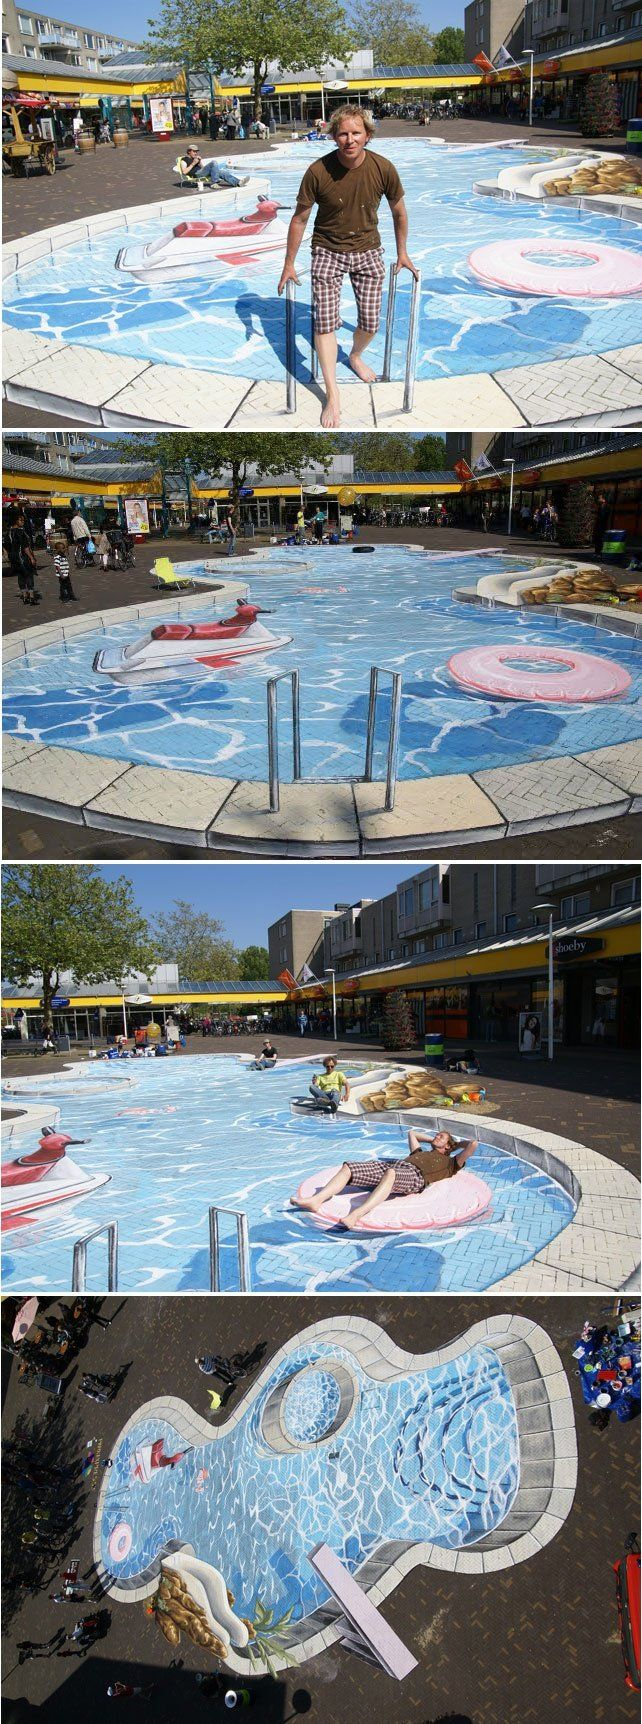 Awesome Chalk Street Art by Leon Keer! #seriousfun